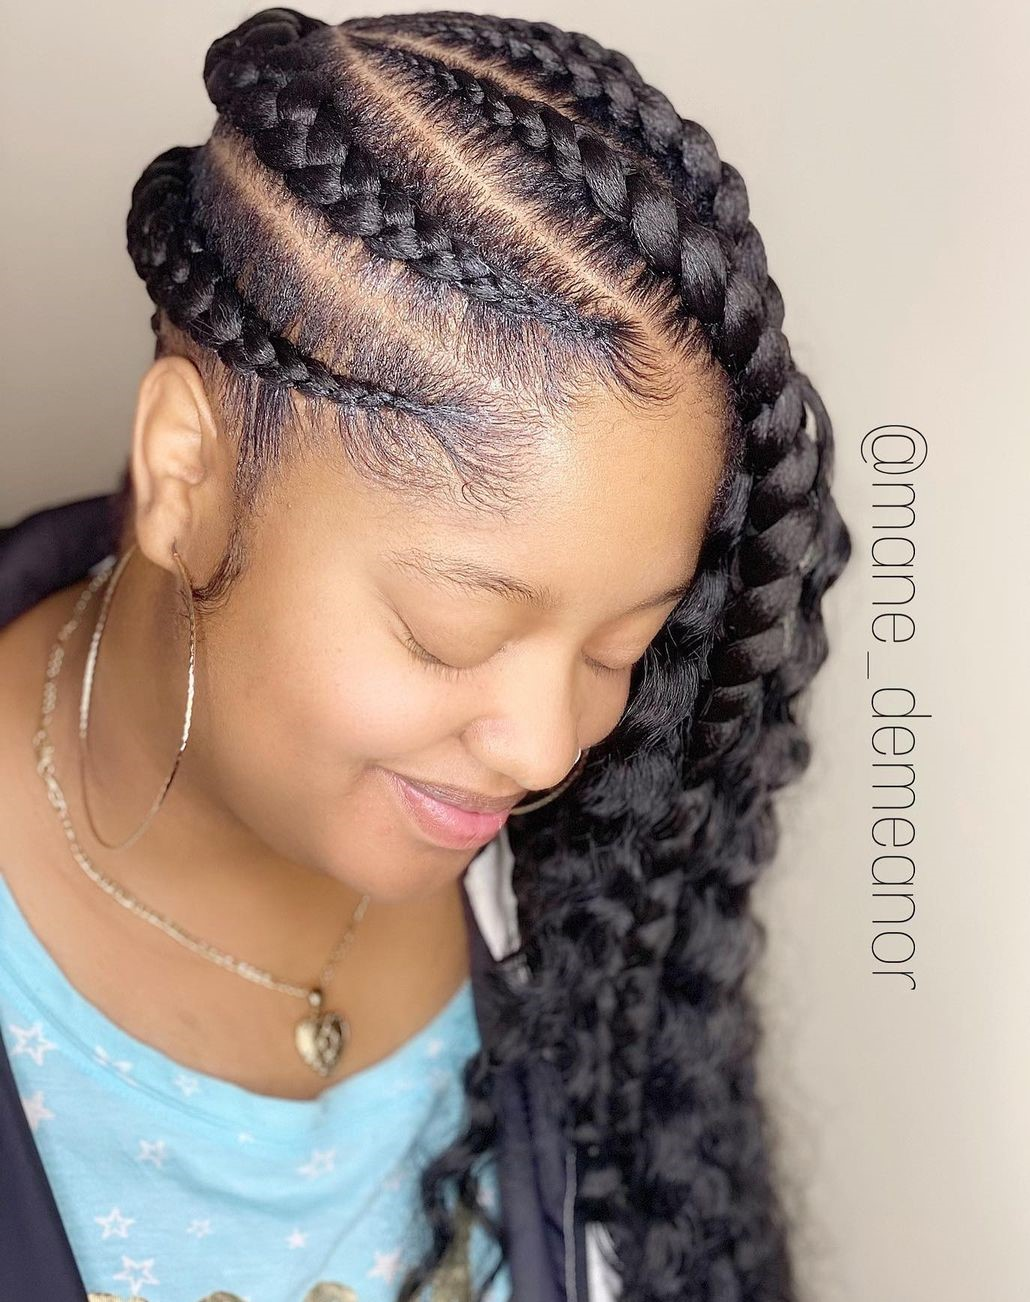 Large Lemonade Braids with Waves